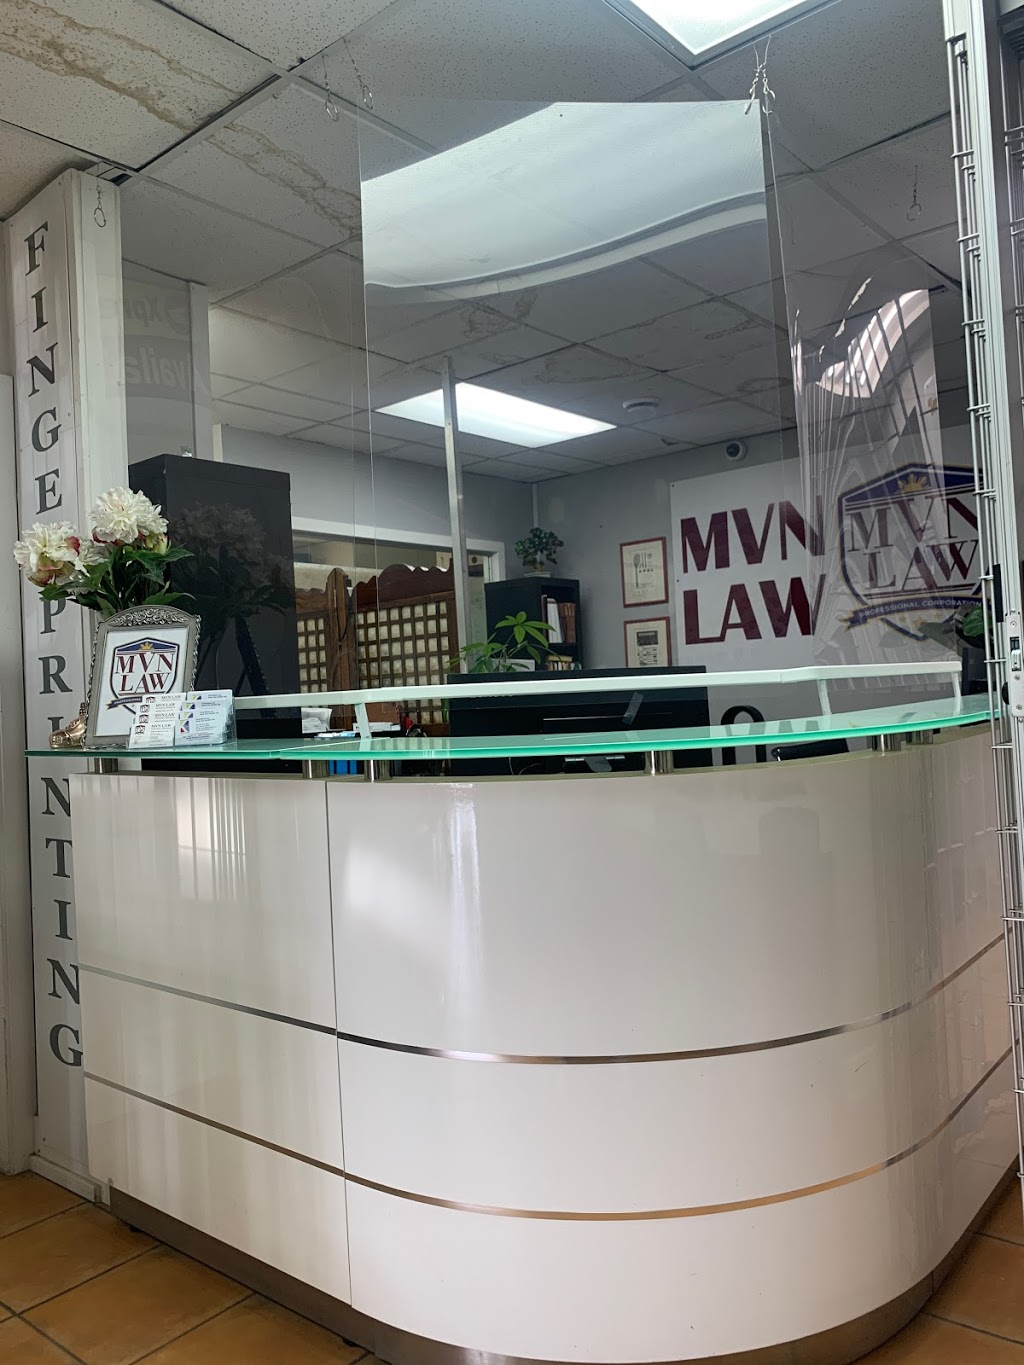 MVN Law   lawyer   276 Wilson Ave, North York, ON M3H 1S7, Canada   4166362389 OR +1 416-636-2389